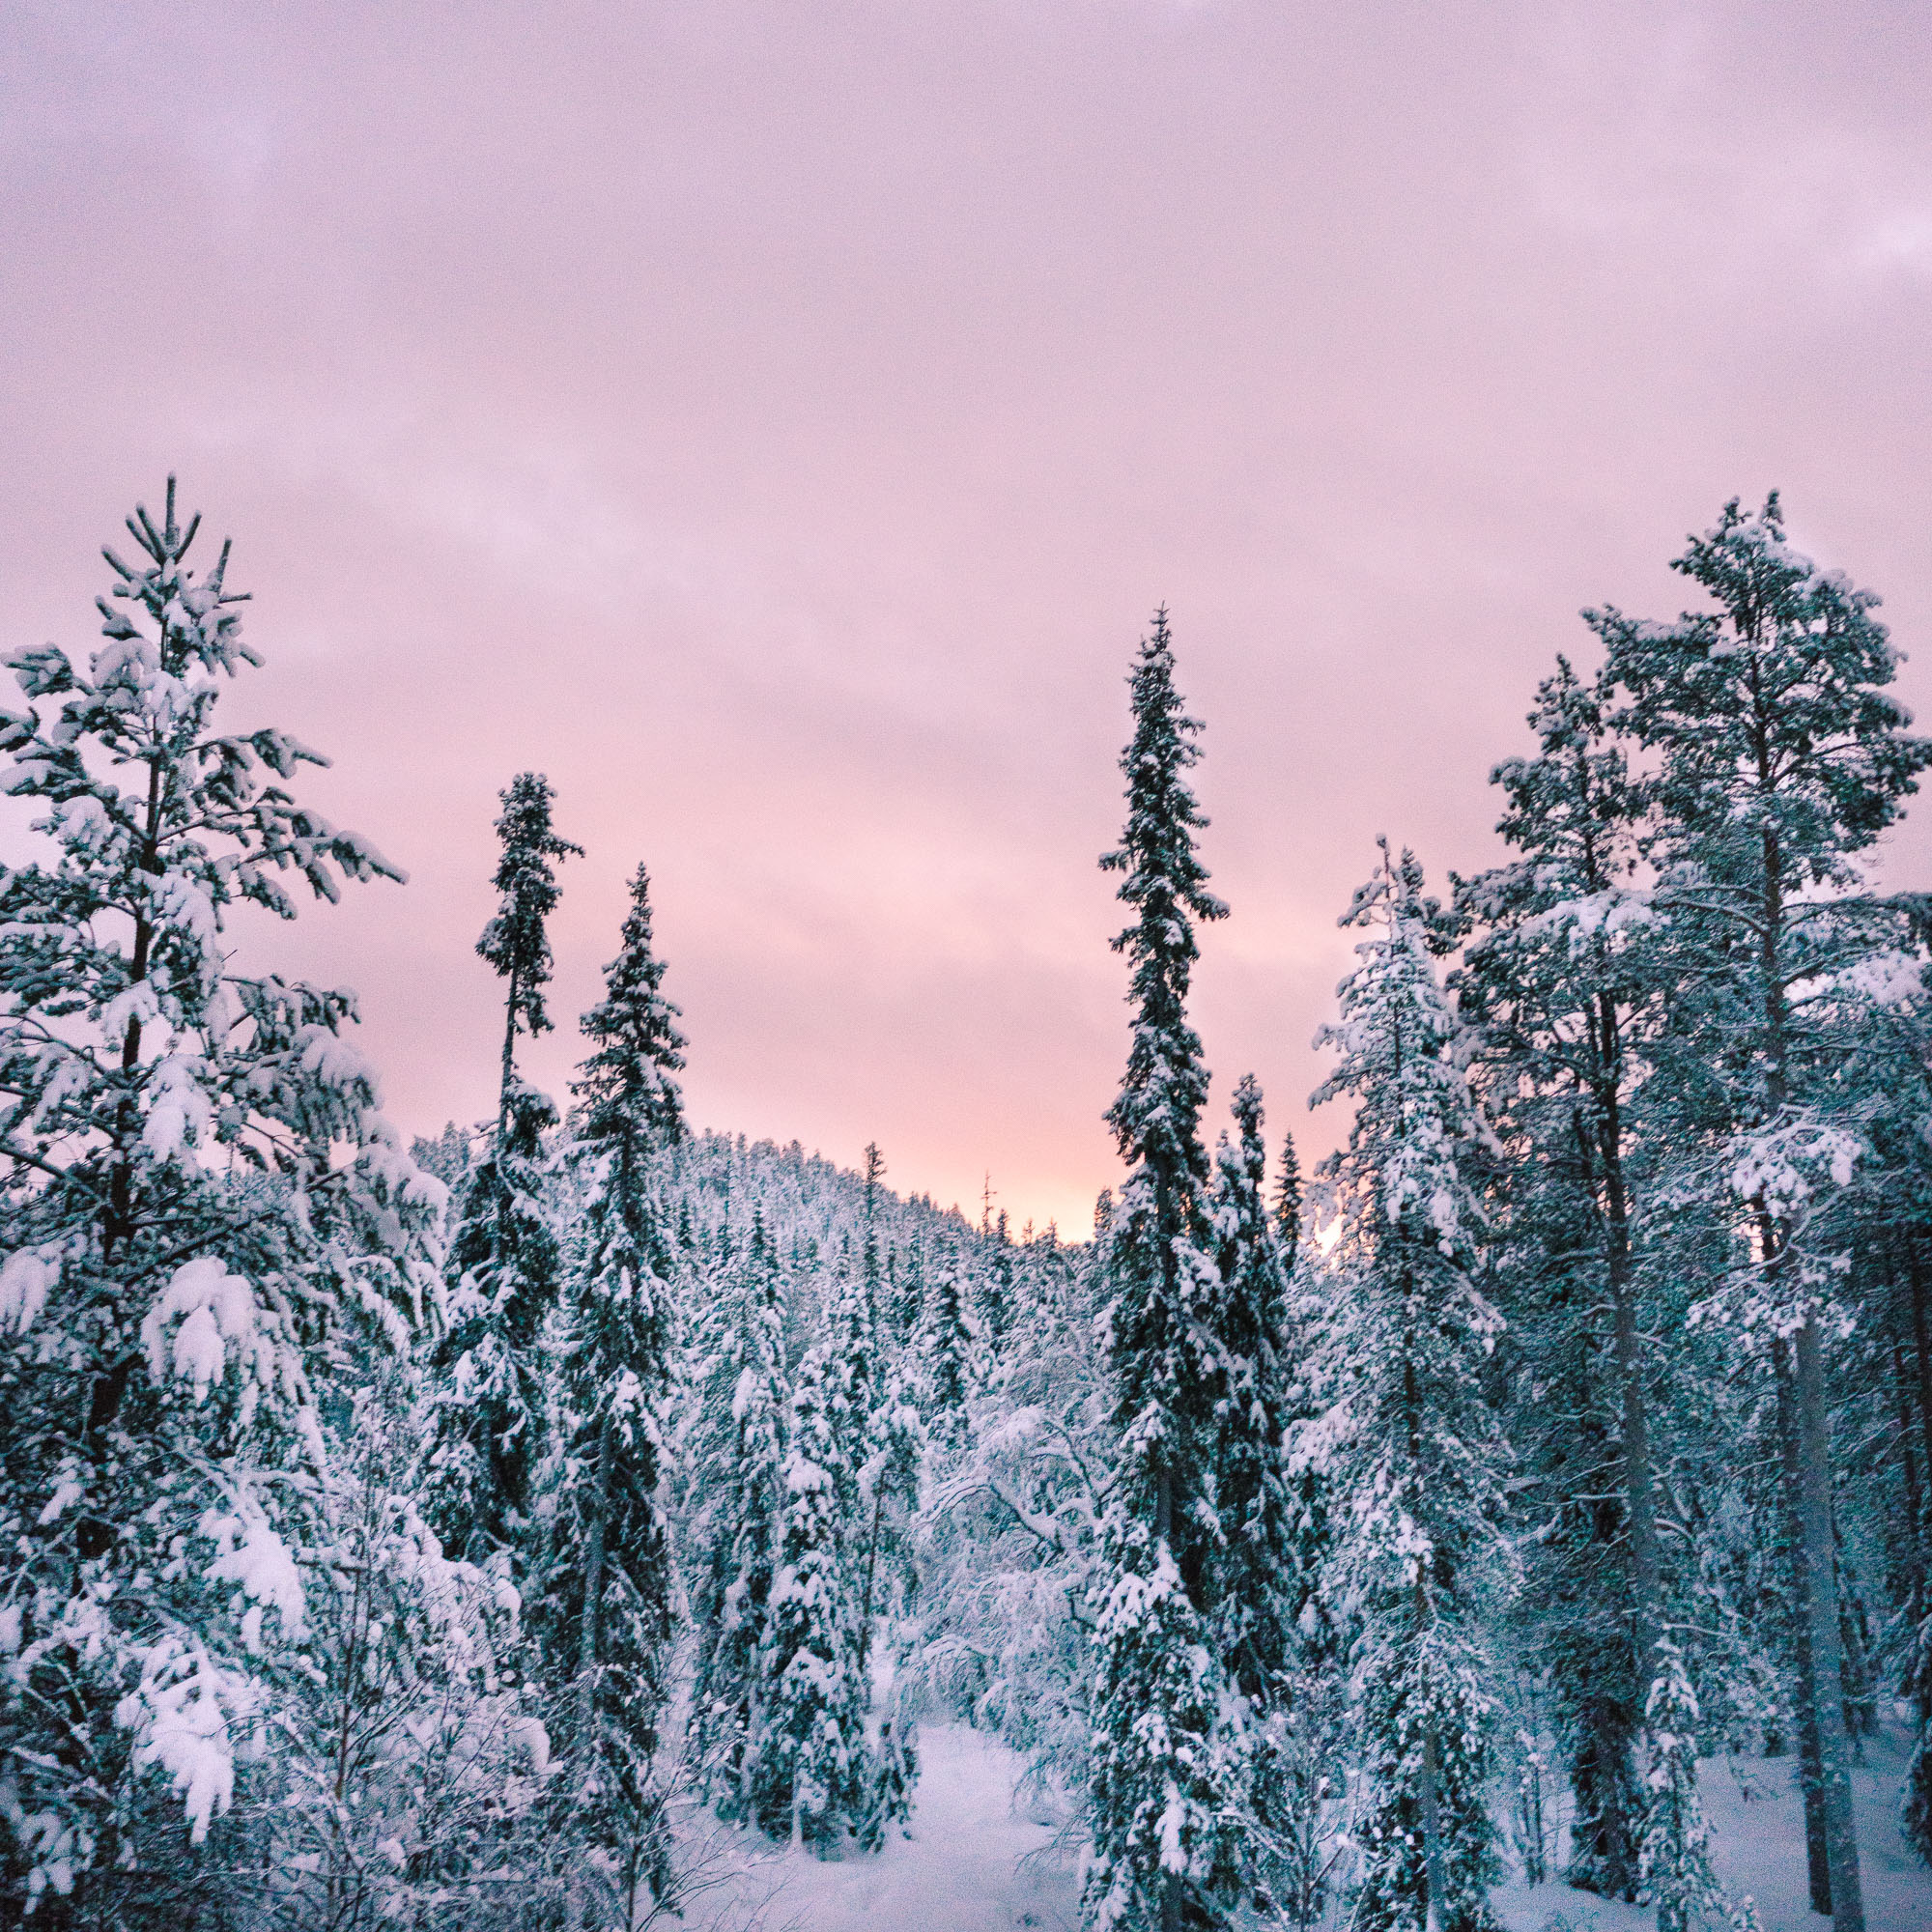 Snow-covered trees during sunset in Finland